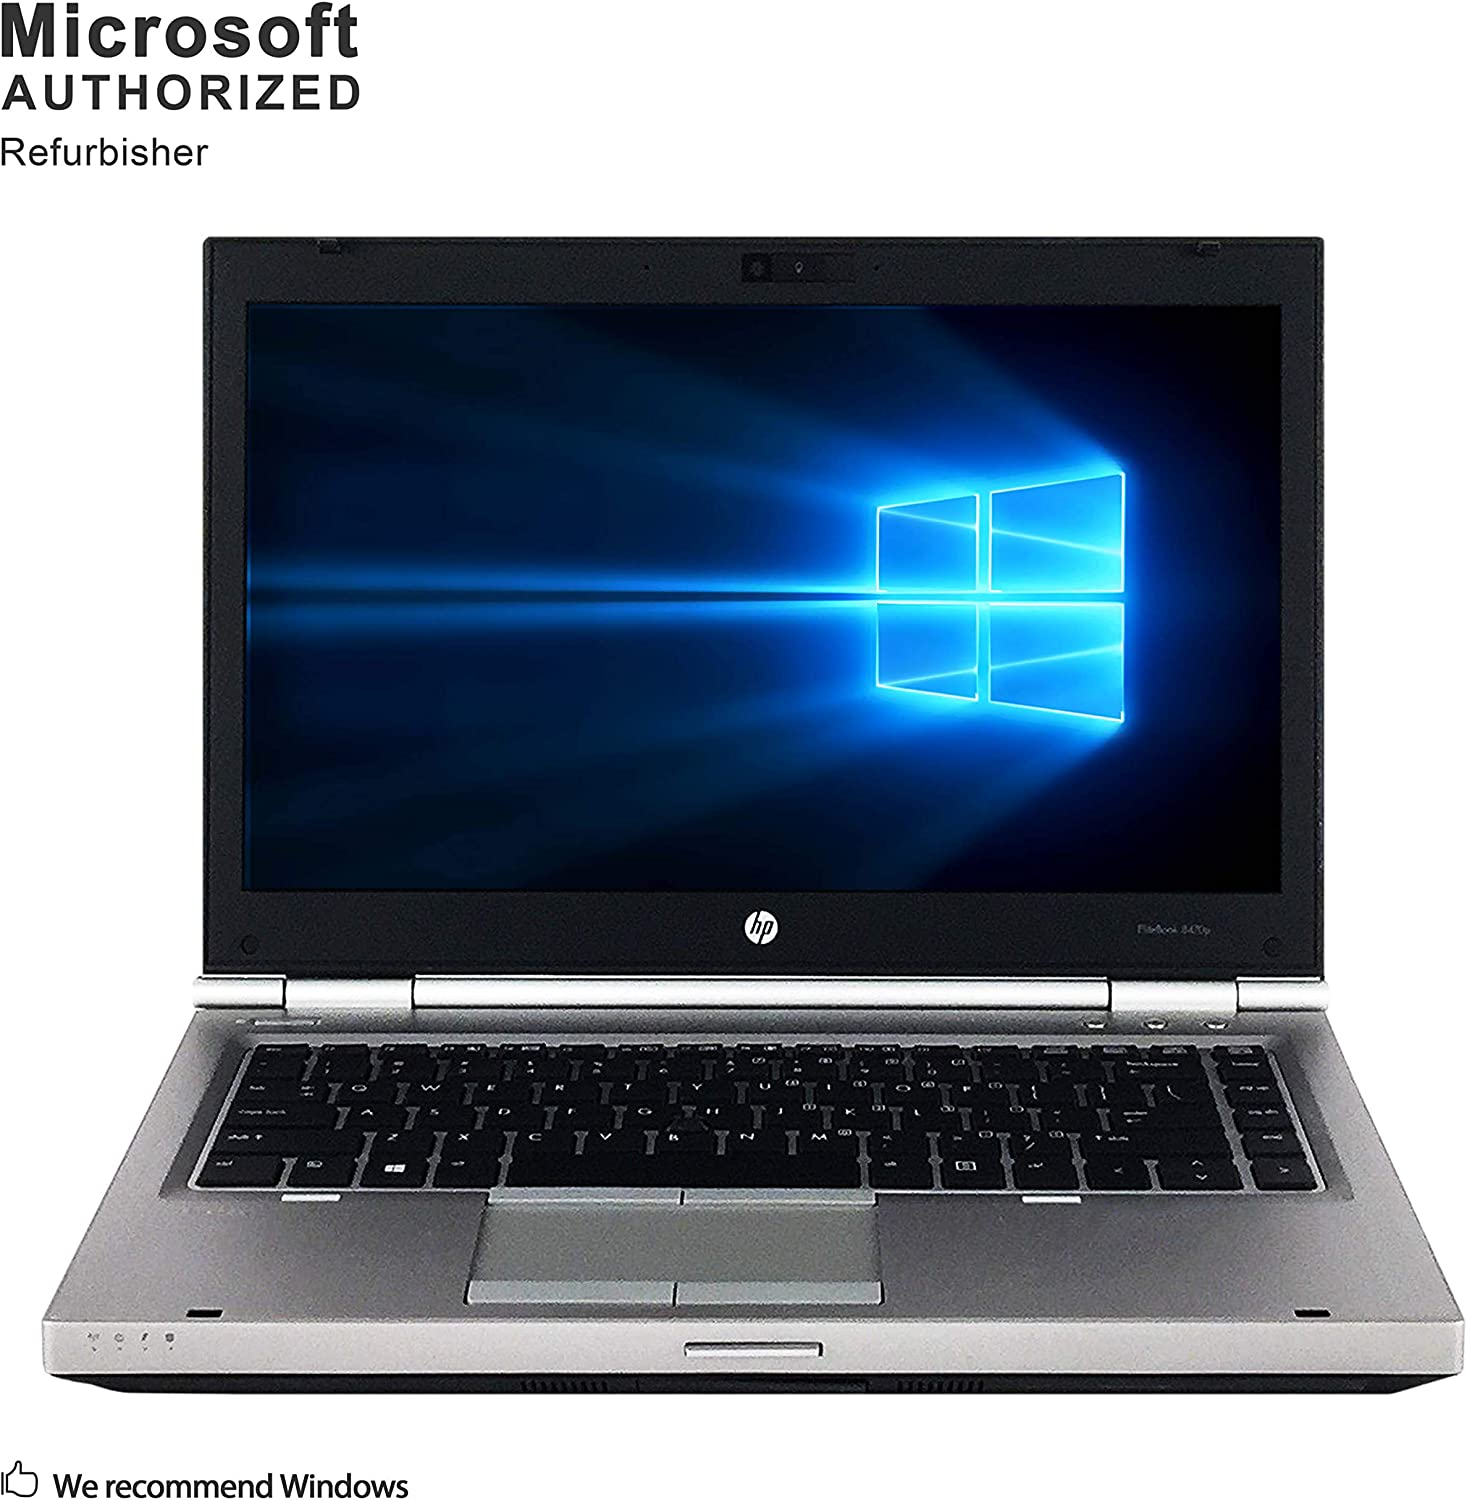 HP ELITEBOOK 8470P 14 Inch Business Laptop, Intel Core i7-3520m up to 3.6GHz, 8G DDR3, 480G SSD, DVDRW, WiFi, USB 3.0, VGA, DP, Win 10 64 Bit-Multi-Language Supports English/Spanish/French(Renewed)